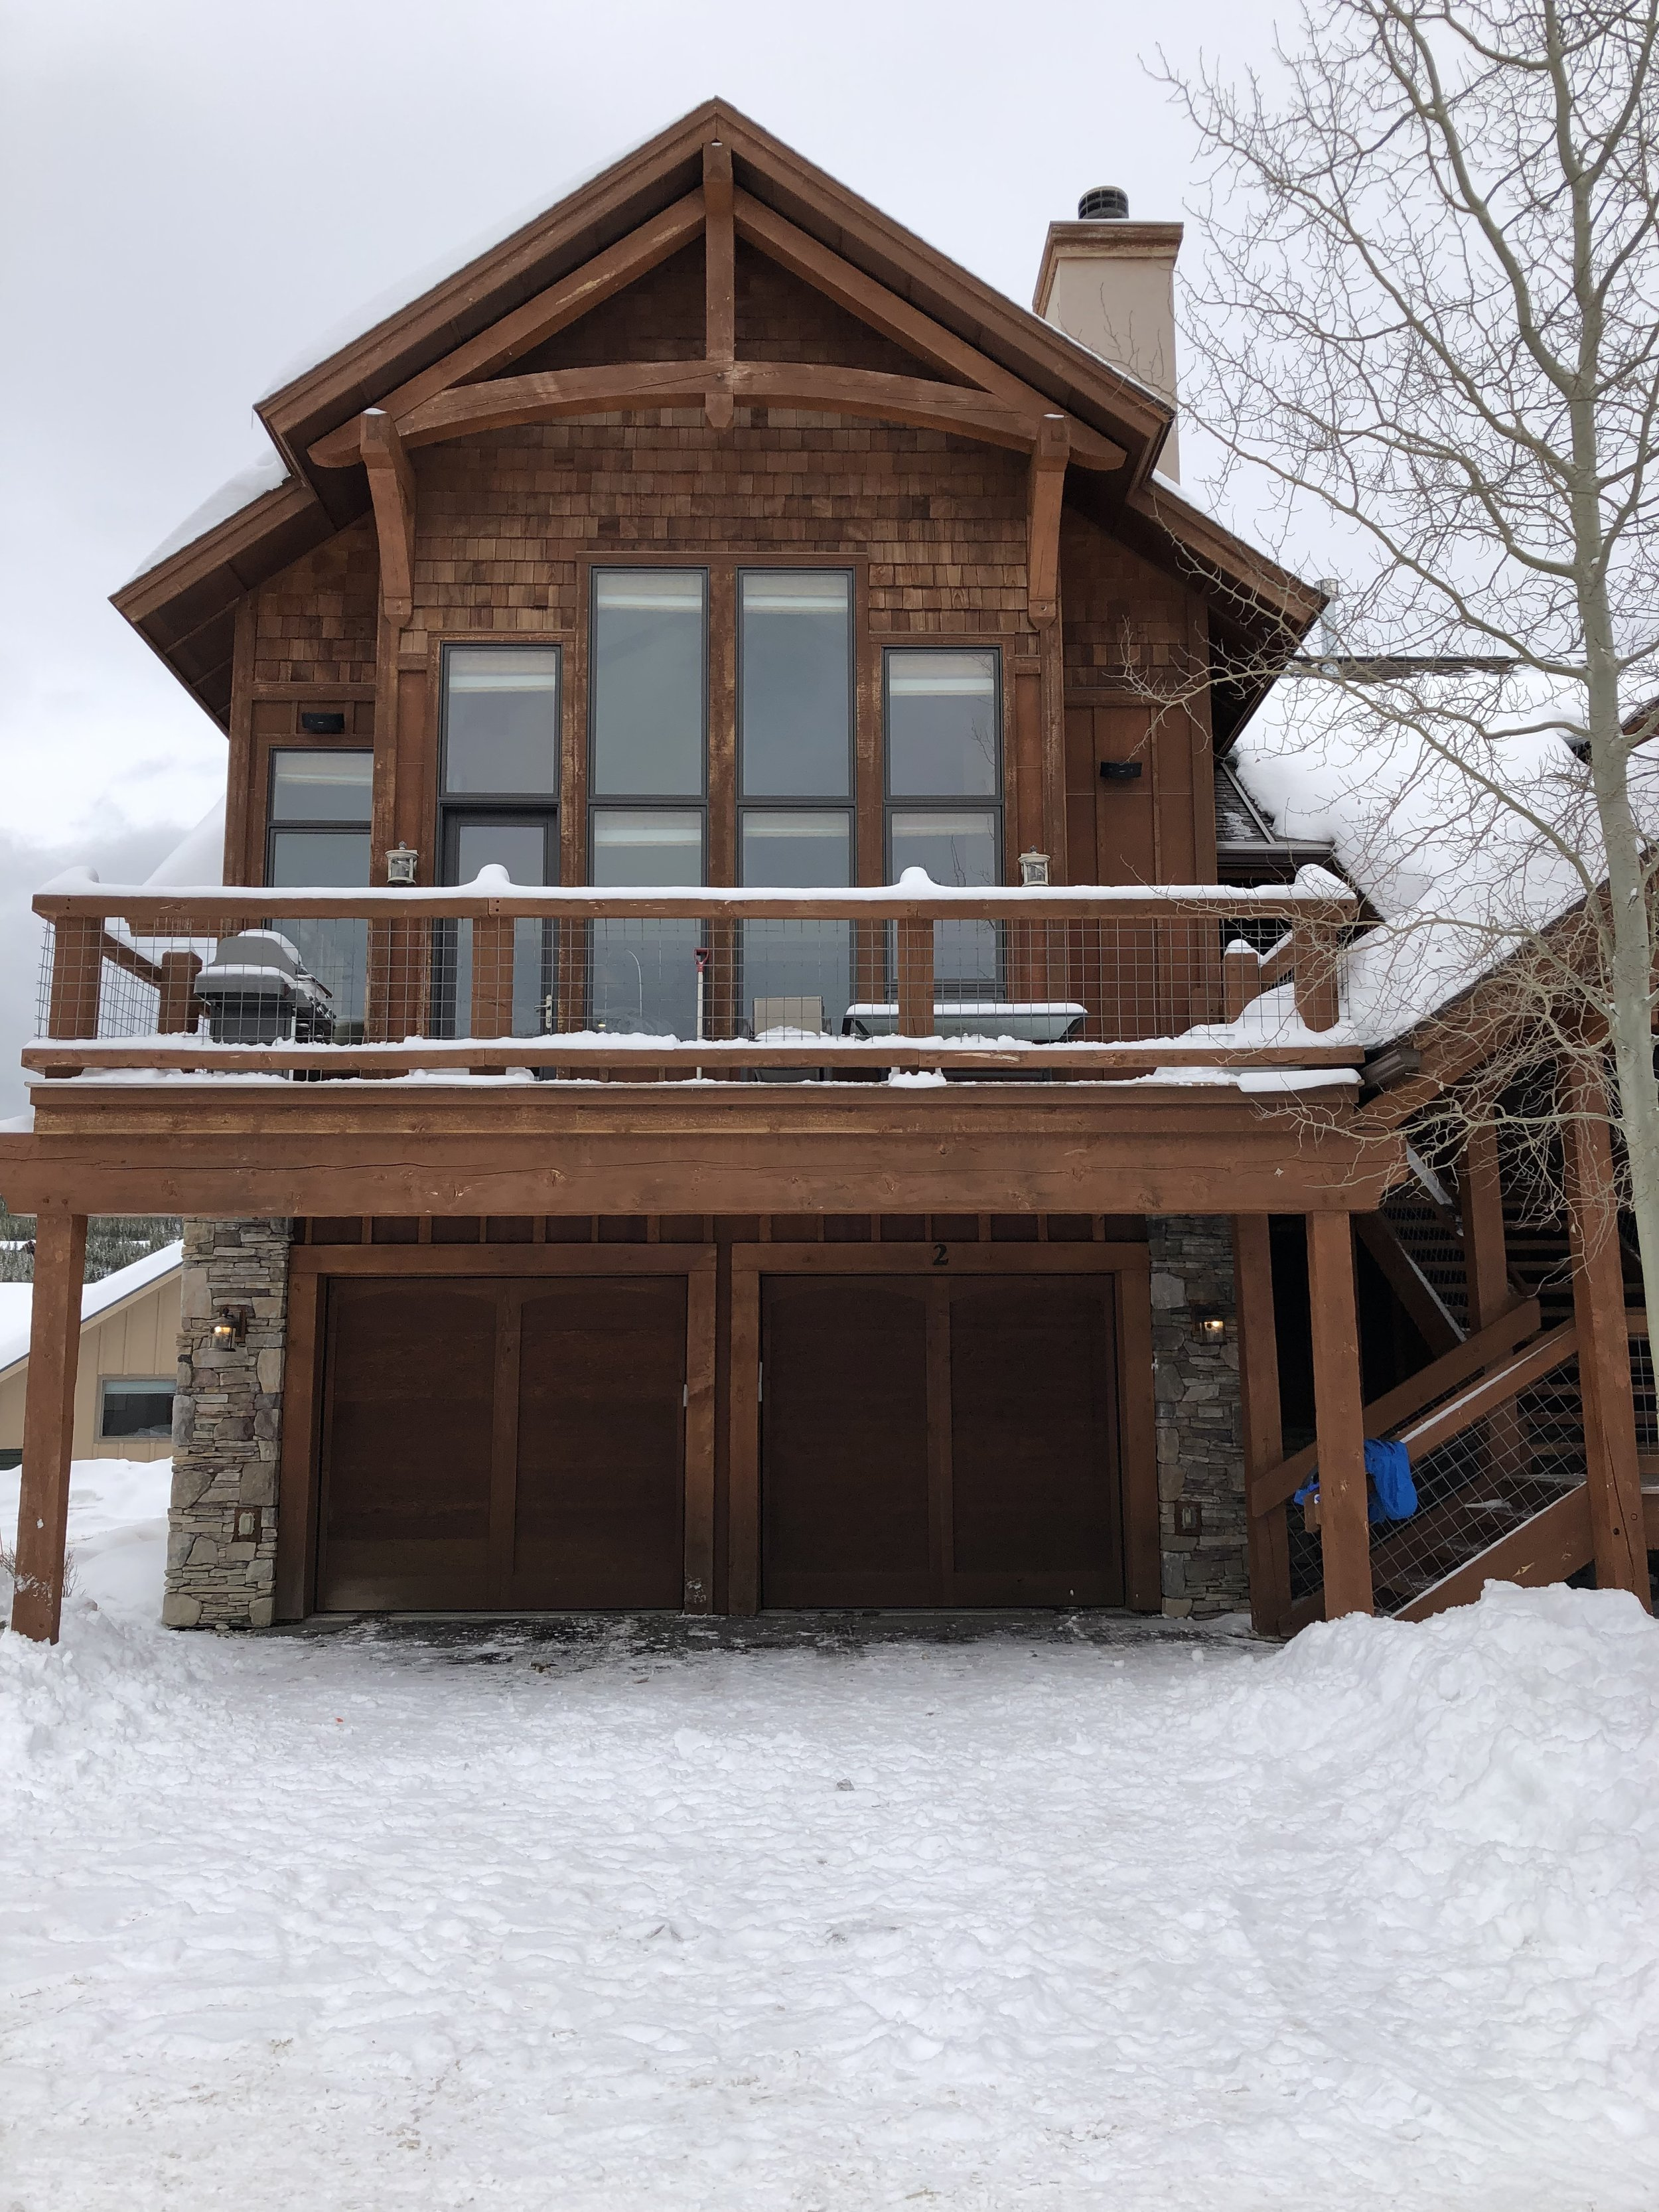 Our Rental in Big Sky, Montana